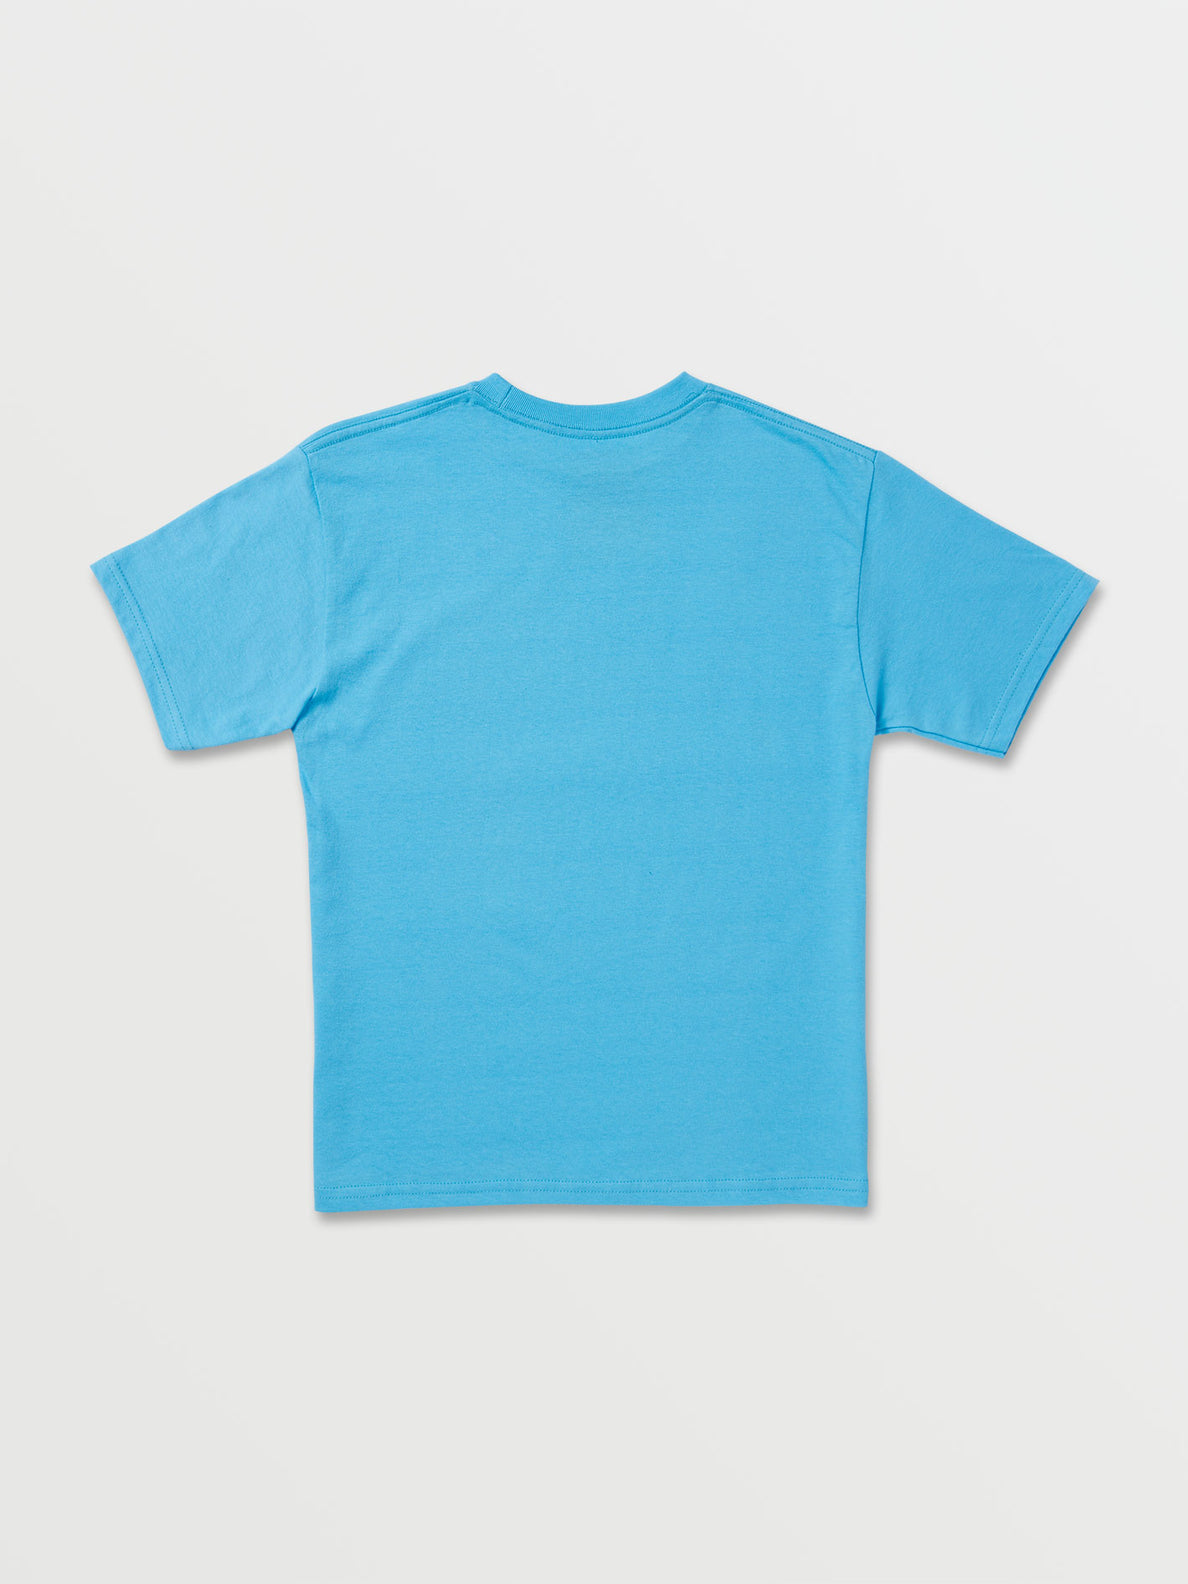 Little Boys Crisp Stone Short Sleeve Tee - Aqua (Y3511800_AQU) [B]